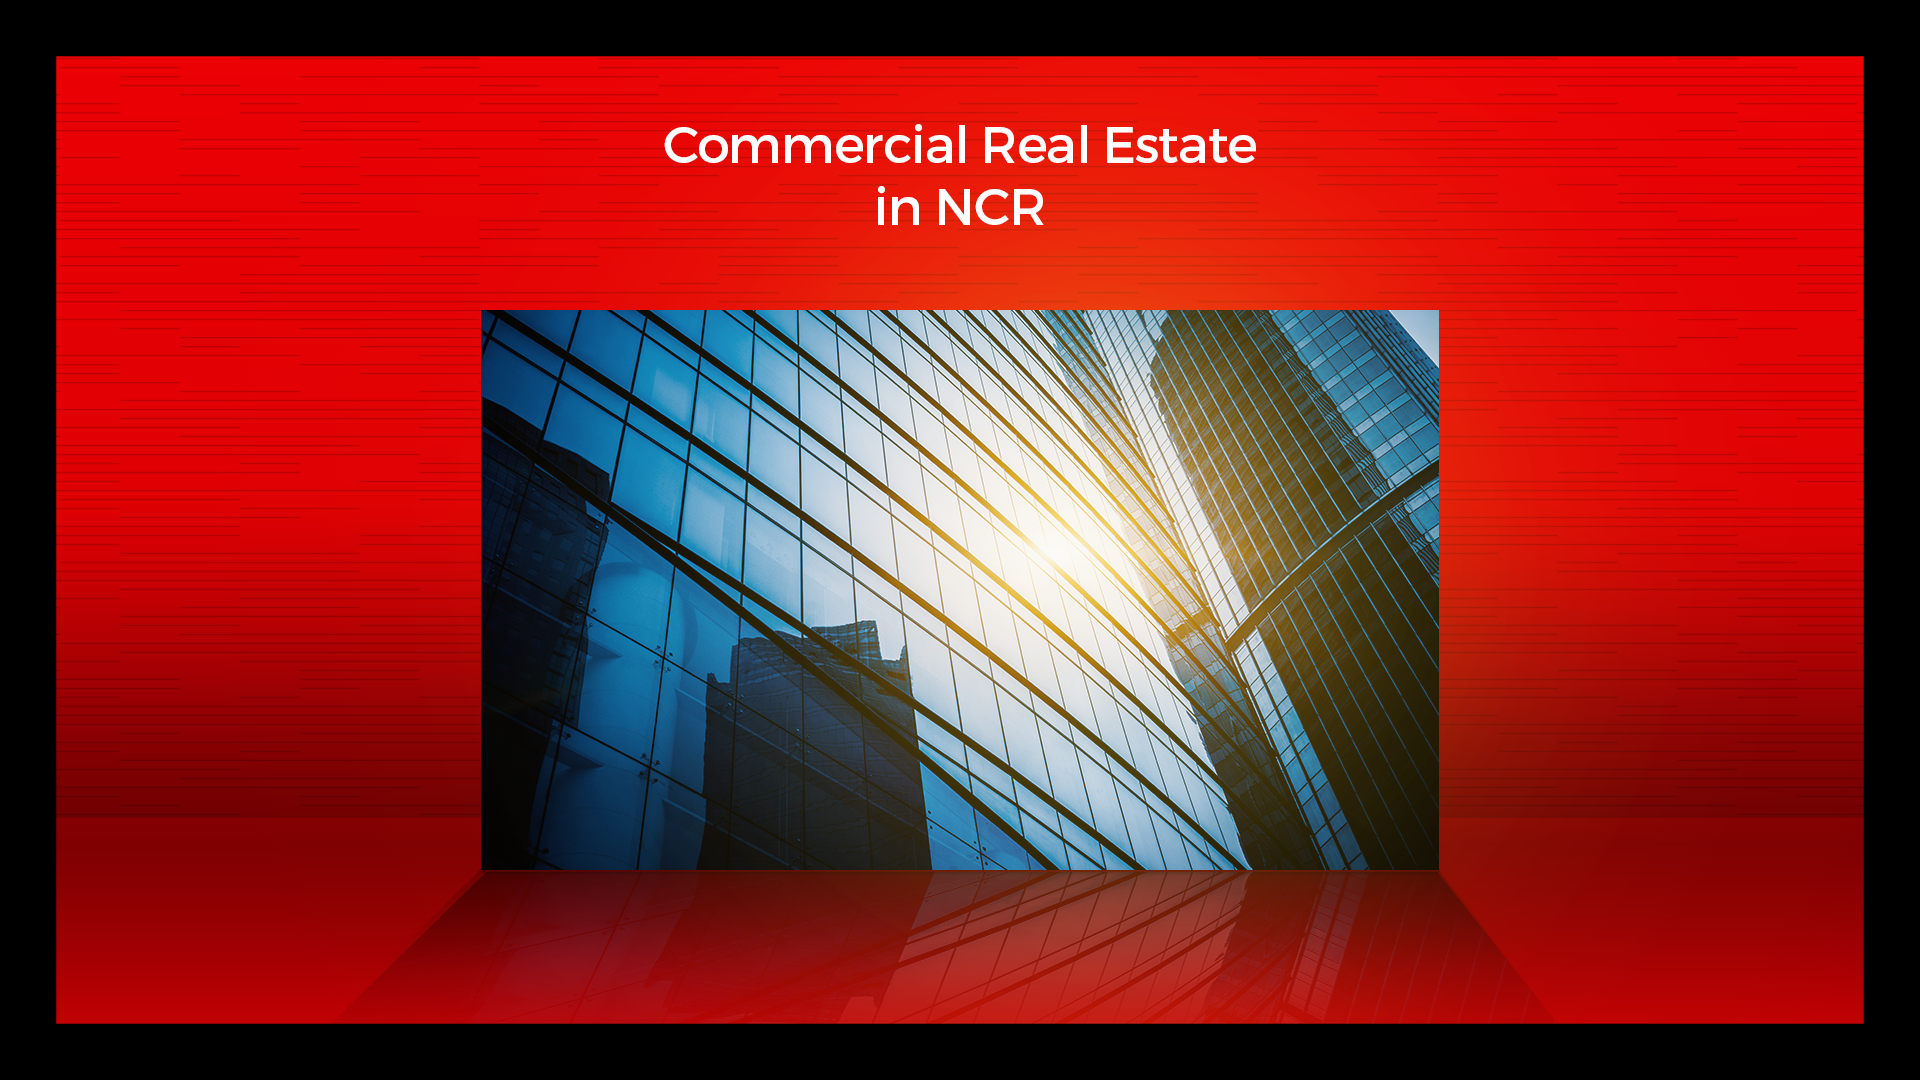 NCR Recorded A 3.5 million sq.ft. Office Absorption Rate In Q2, 2018